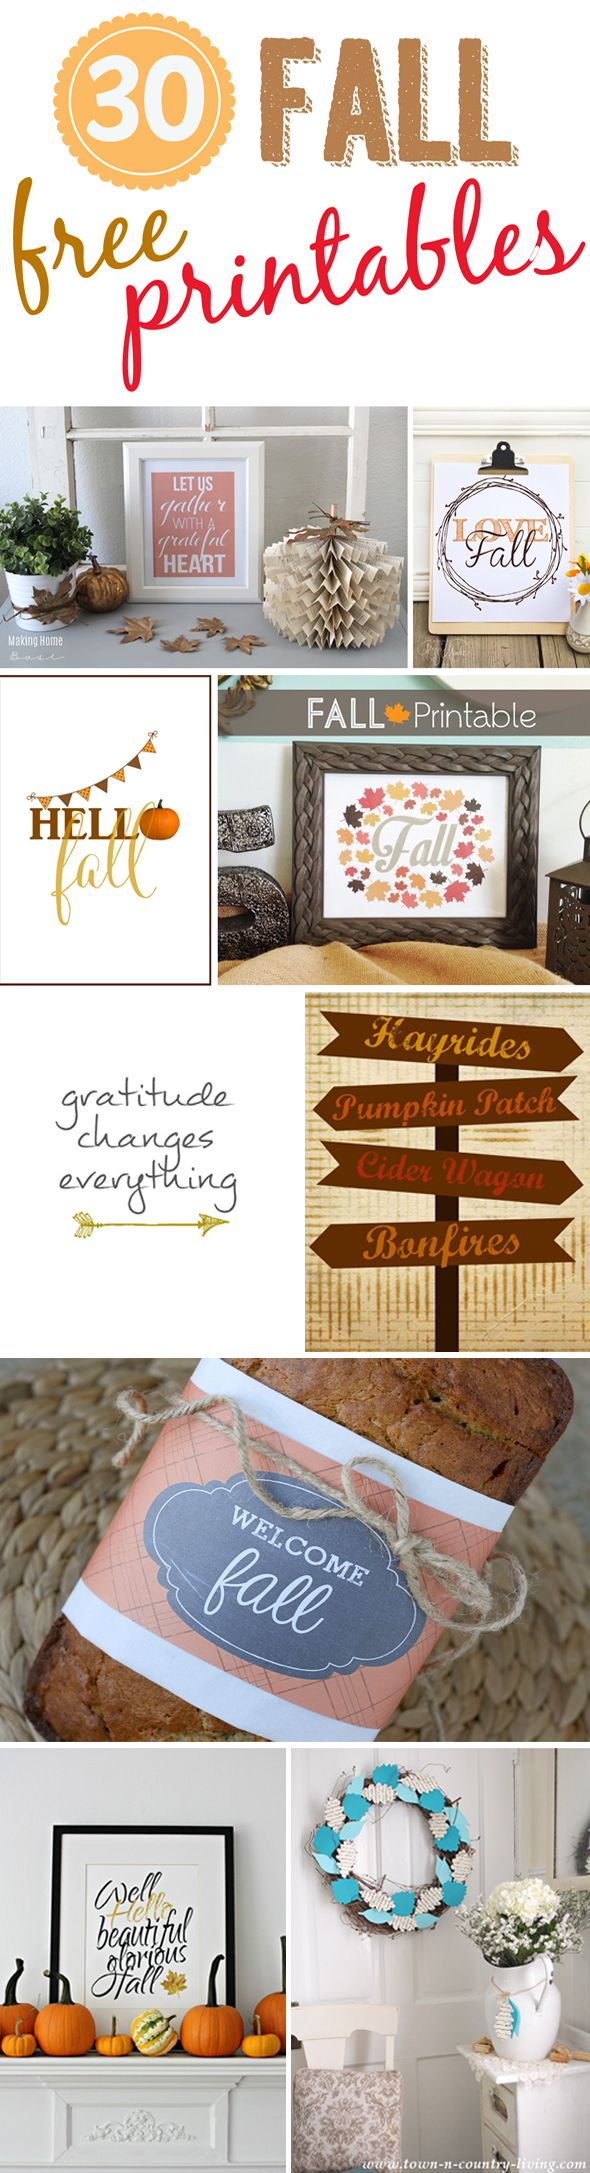 30 Free Fall Printables - Pretty My Party #free #fall #printables